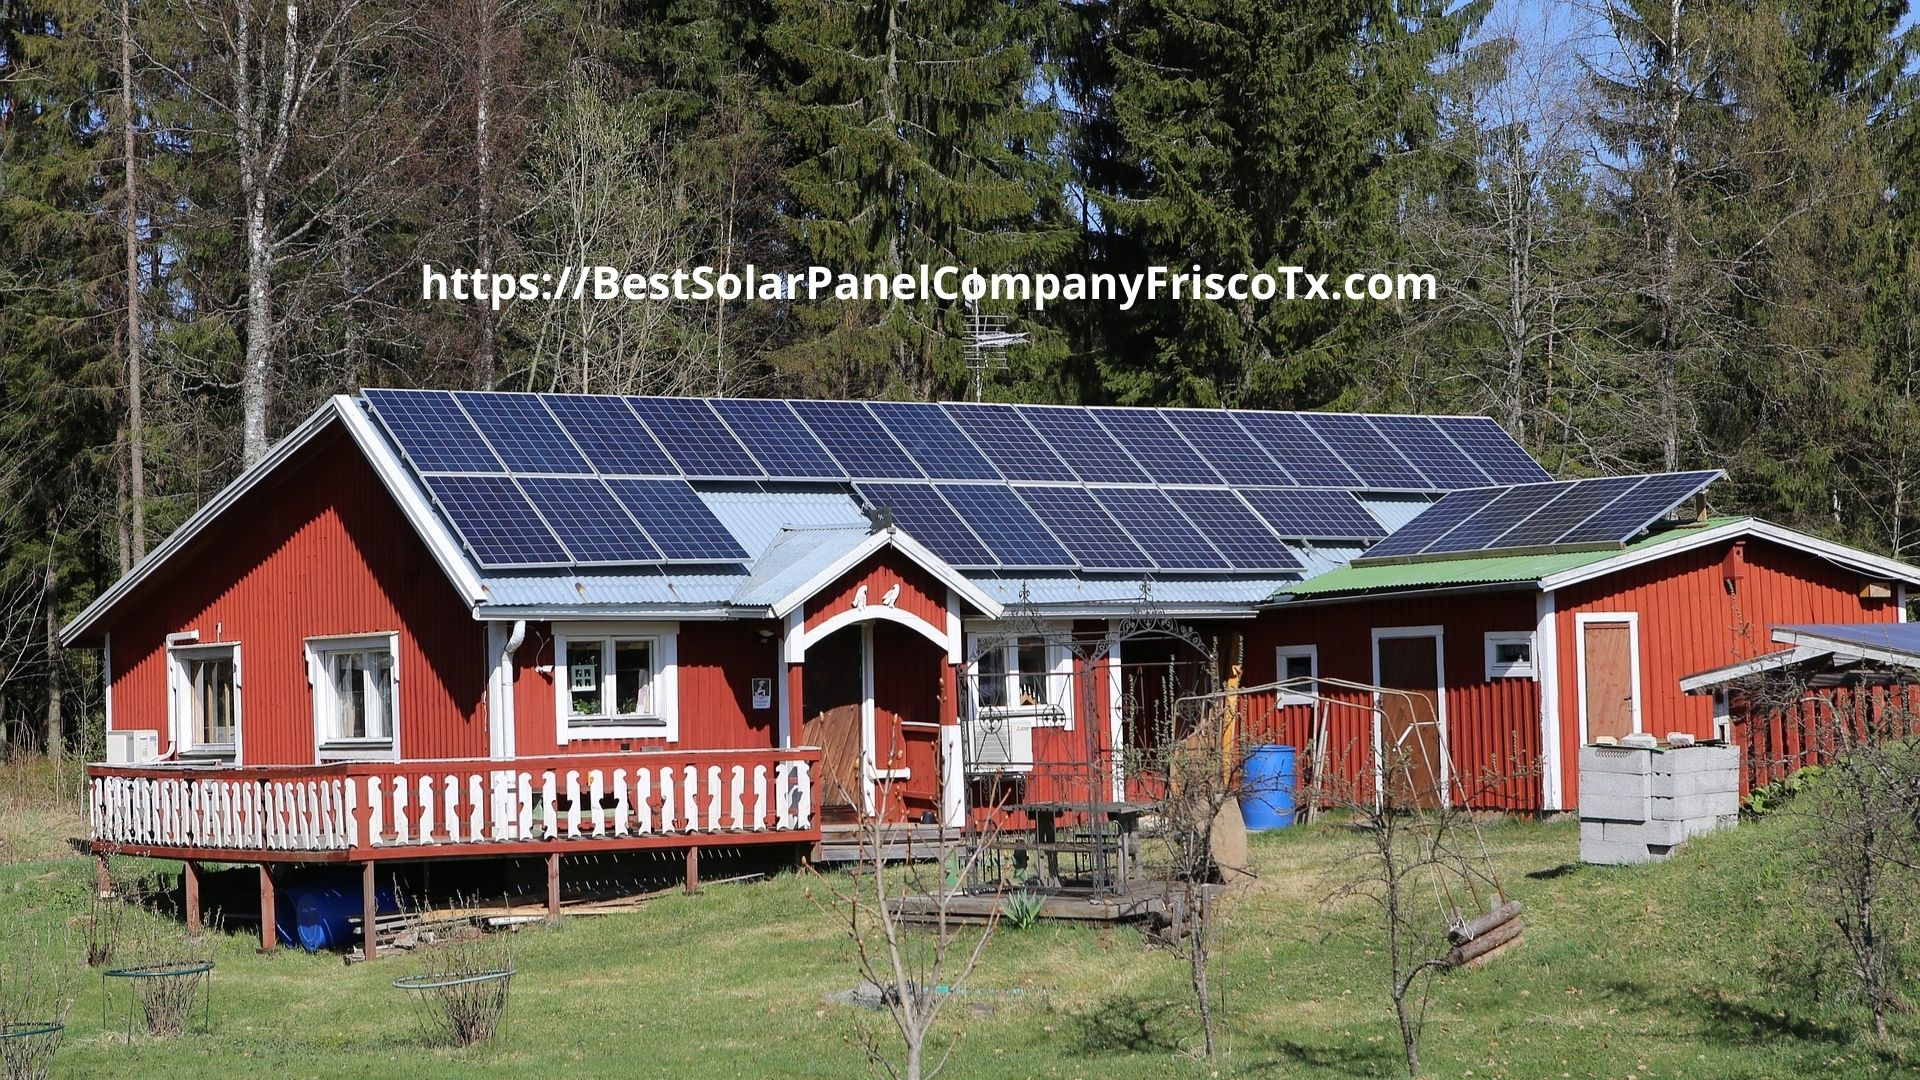 Best Solar Panel Company Frisco TX Launches New Website with Contemporary Design, Crisp Visuals 6